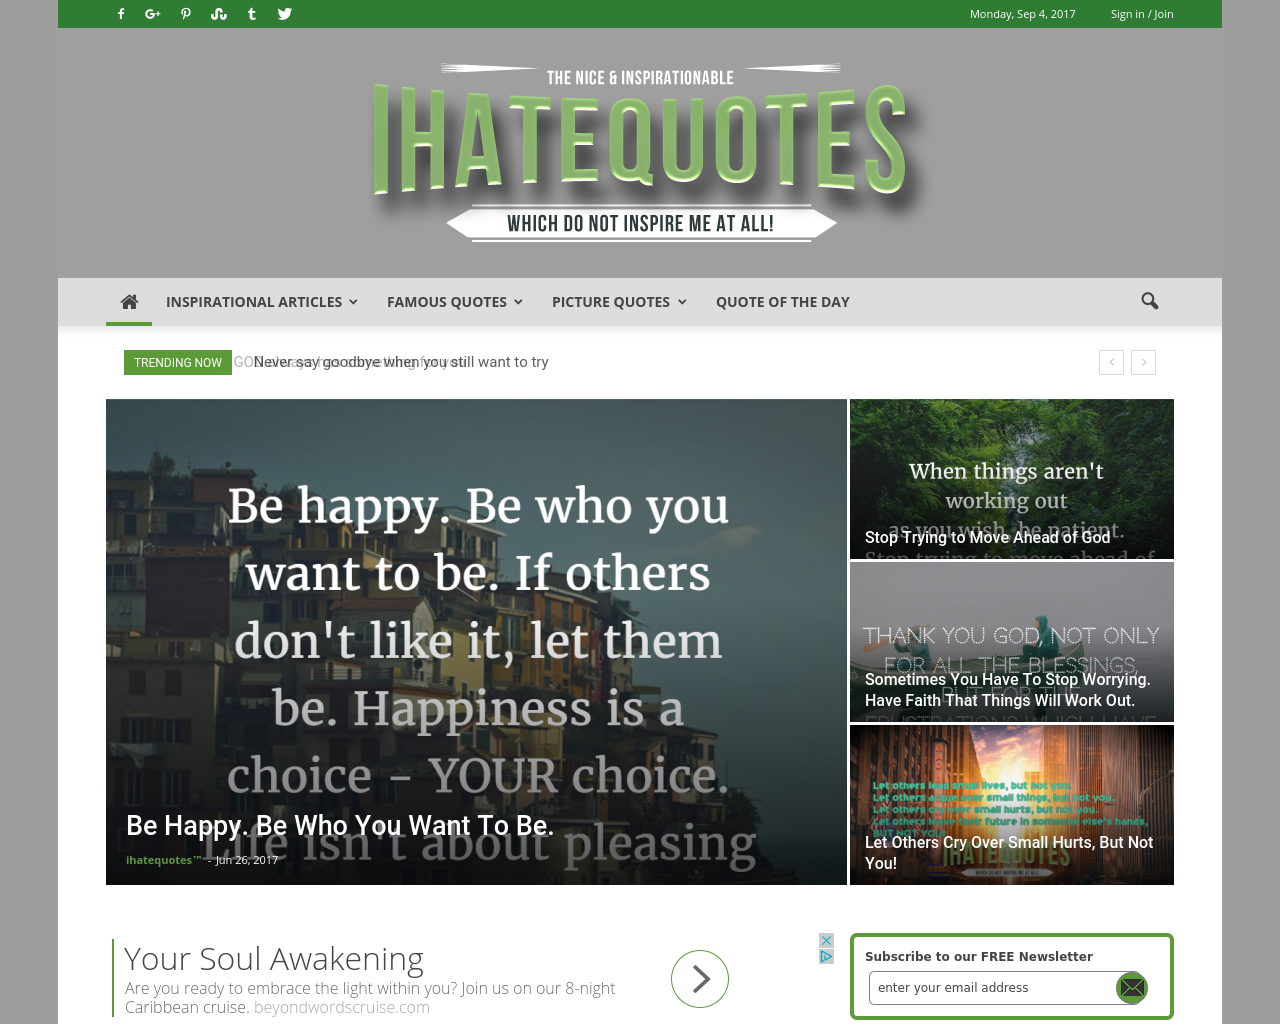 I-Hate-Quotes-Advertising-Reviews-Pricing